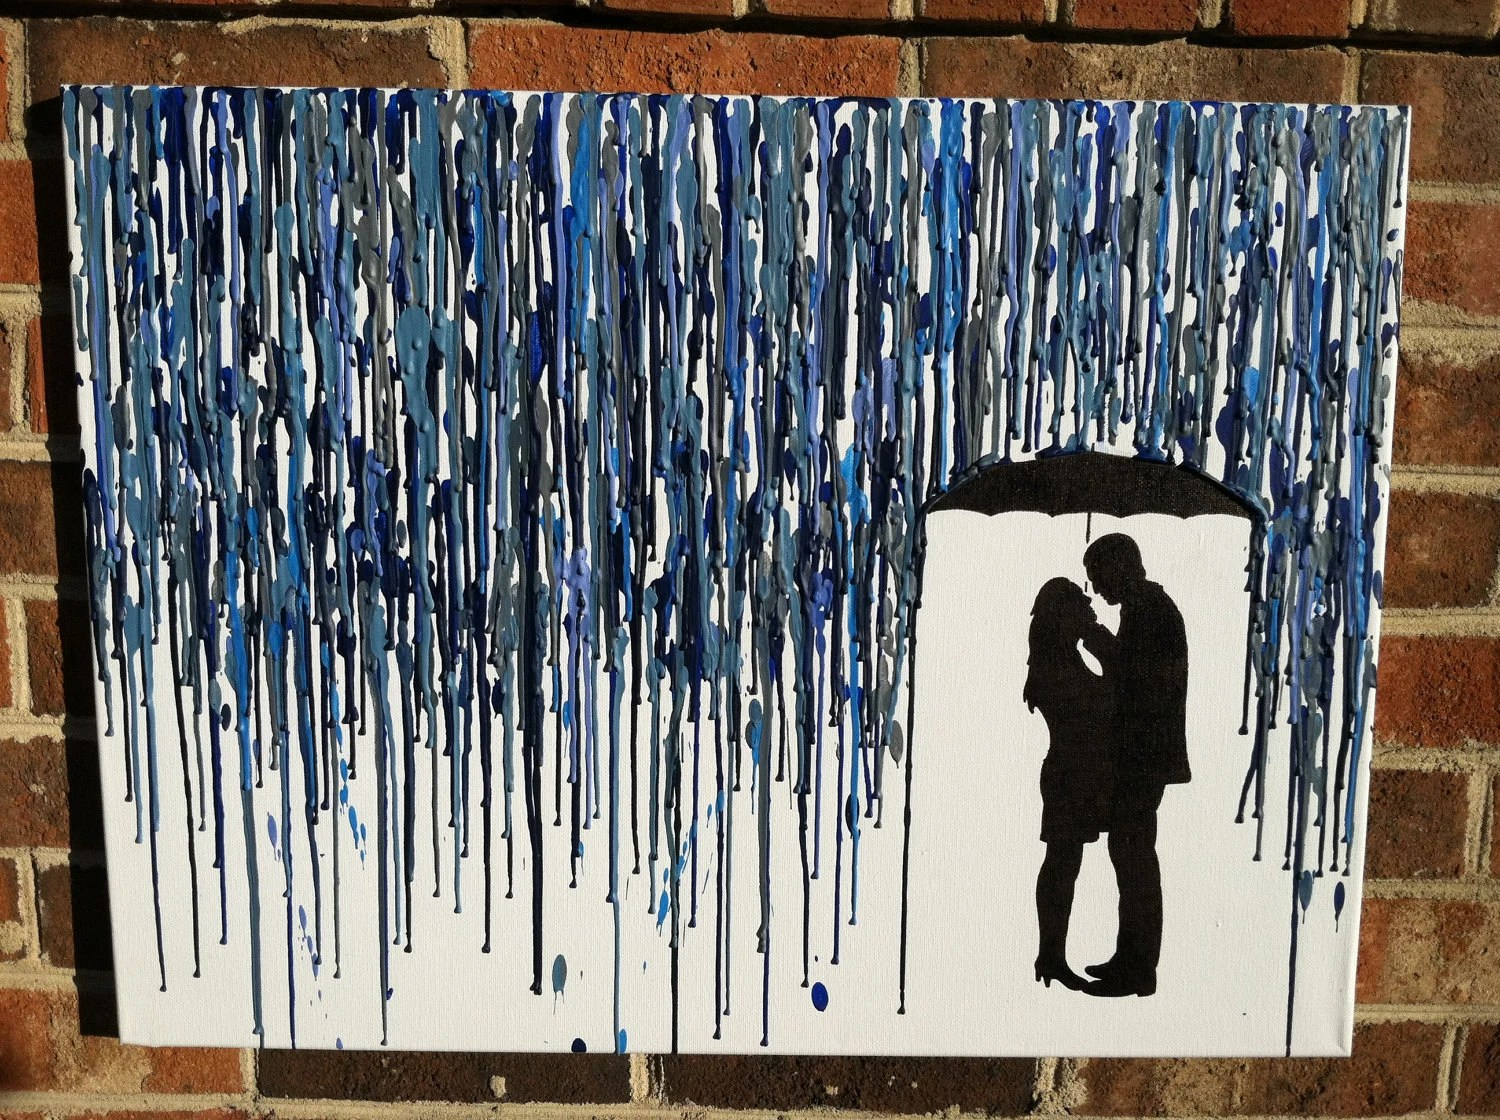 Melted Umbrella Crayon Art with Silhouette (Not Customized)